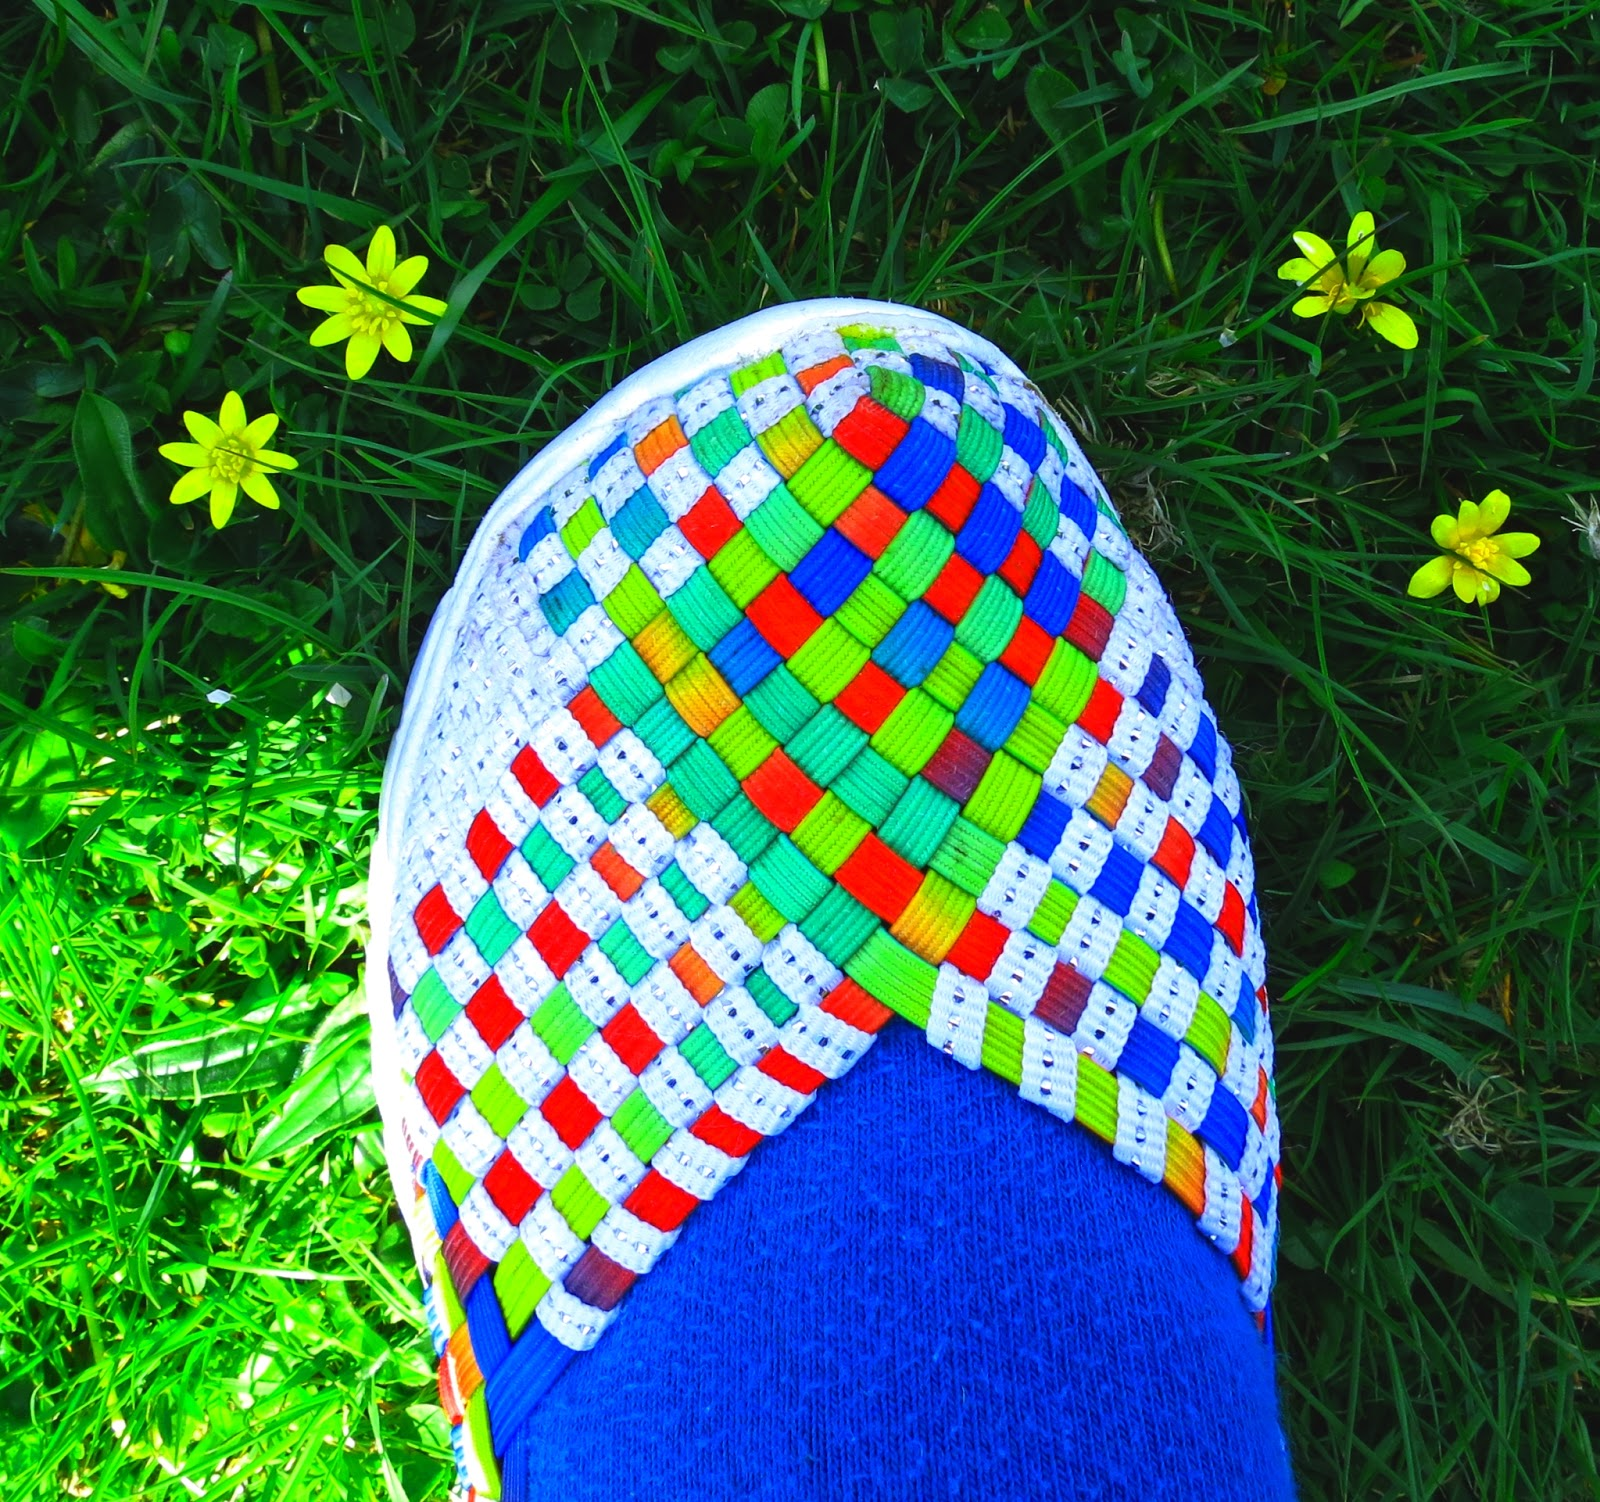 Me new and multi-coloured shoe.